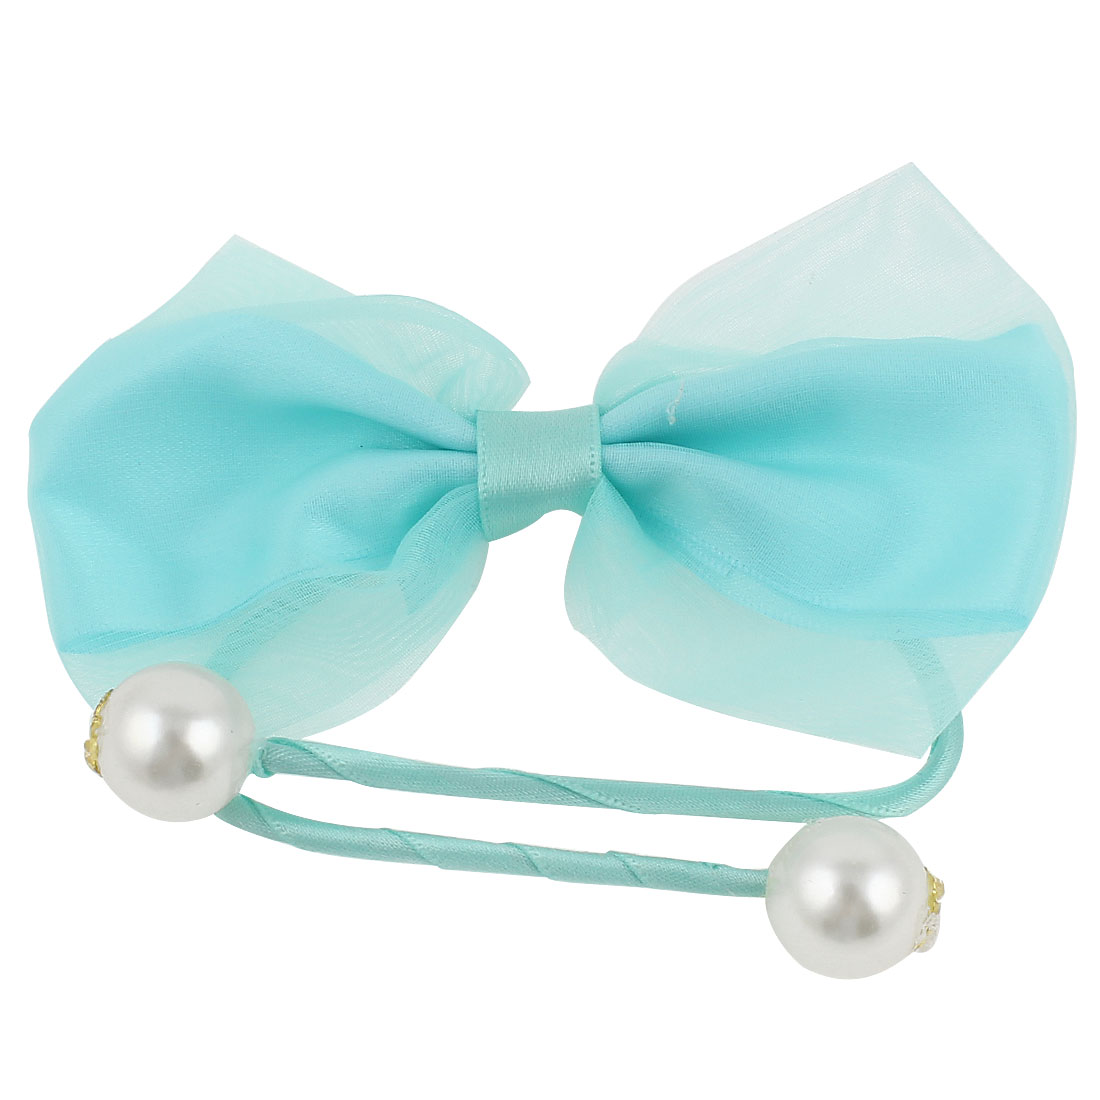 Plastic Pearl Bowtie Decor DIY Rope Wire Hair Band Tie Bracelet Light Blue